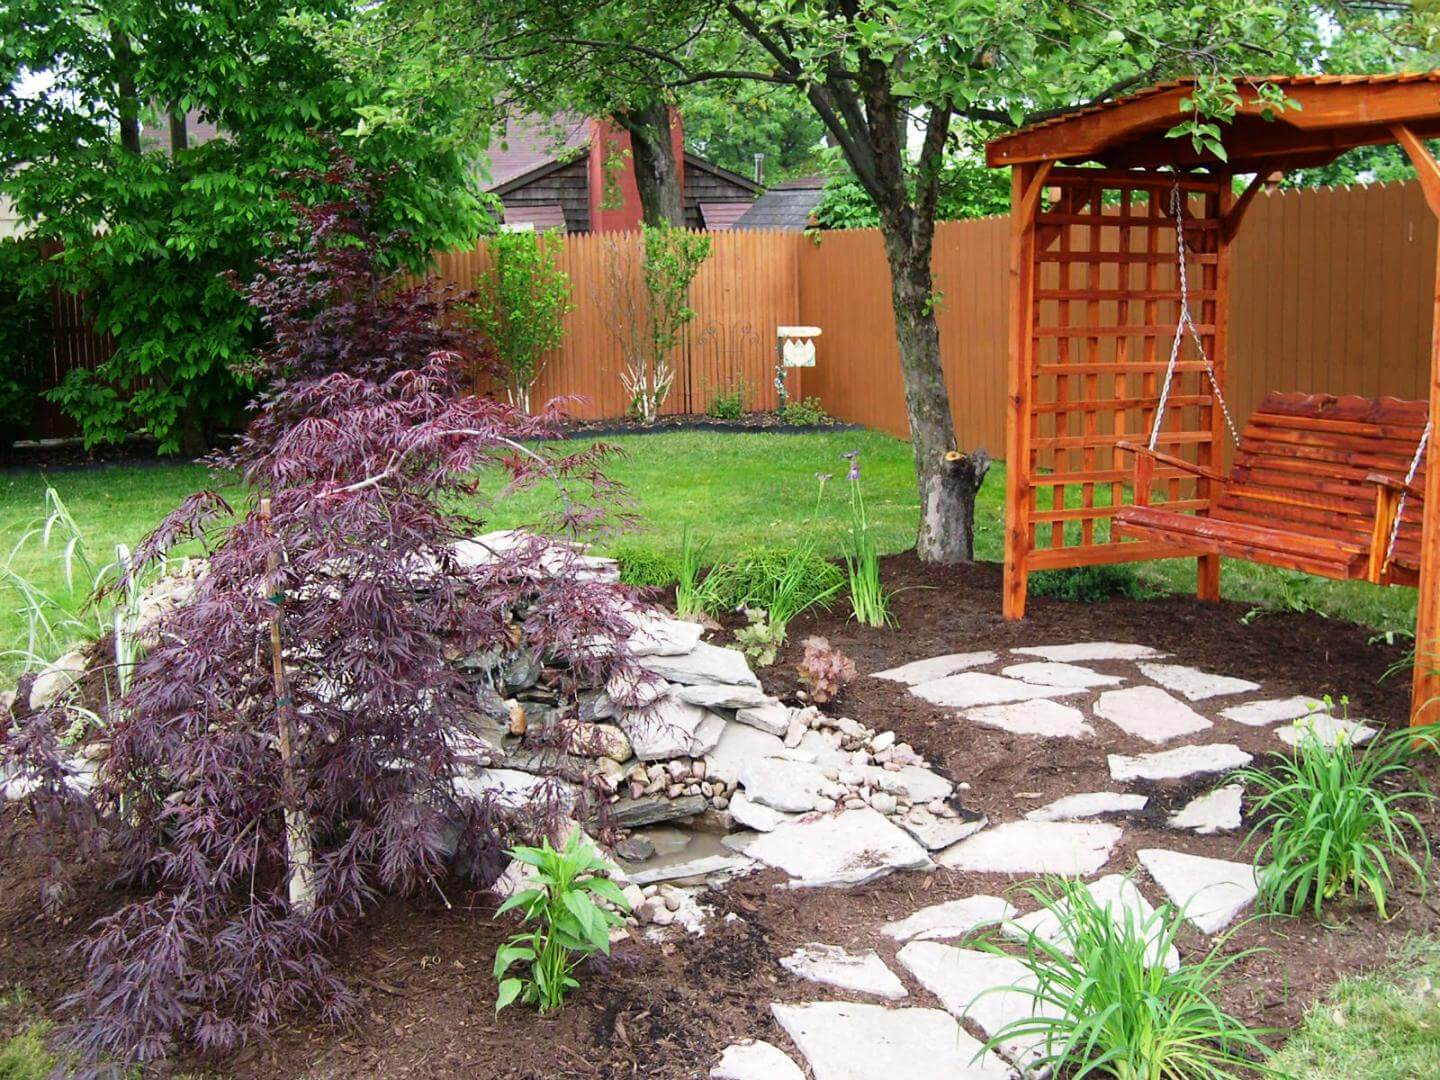 Cool Backyard Ideas America Underwater Decor Awesome Backyard Ideas inside 12 Some of the Coolest Ideas How to Craft Cool Backyard Ideas